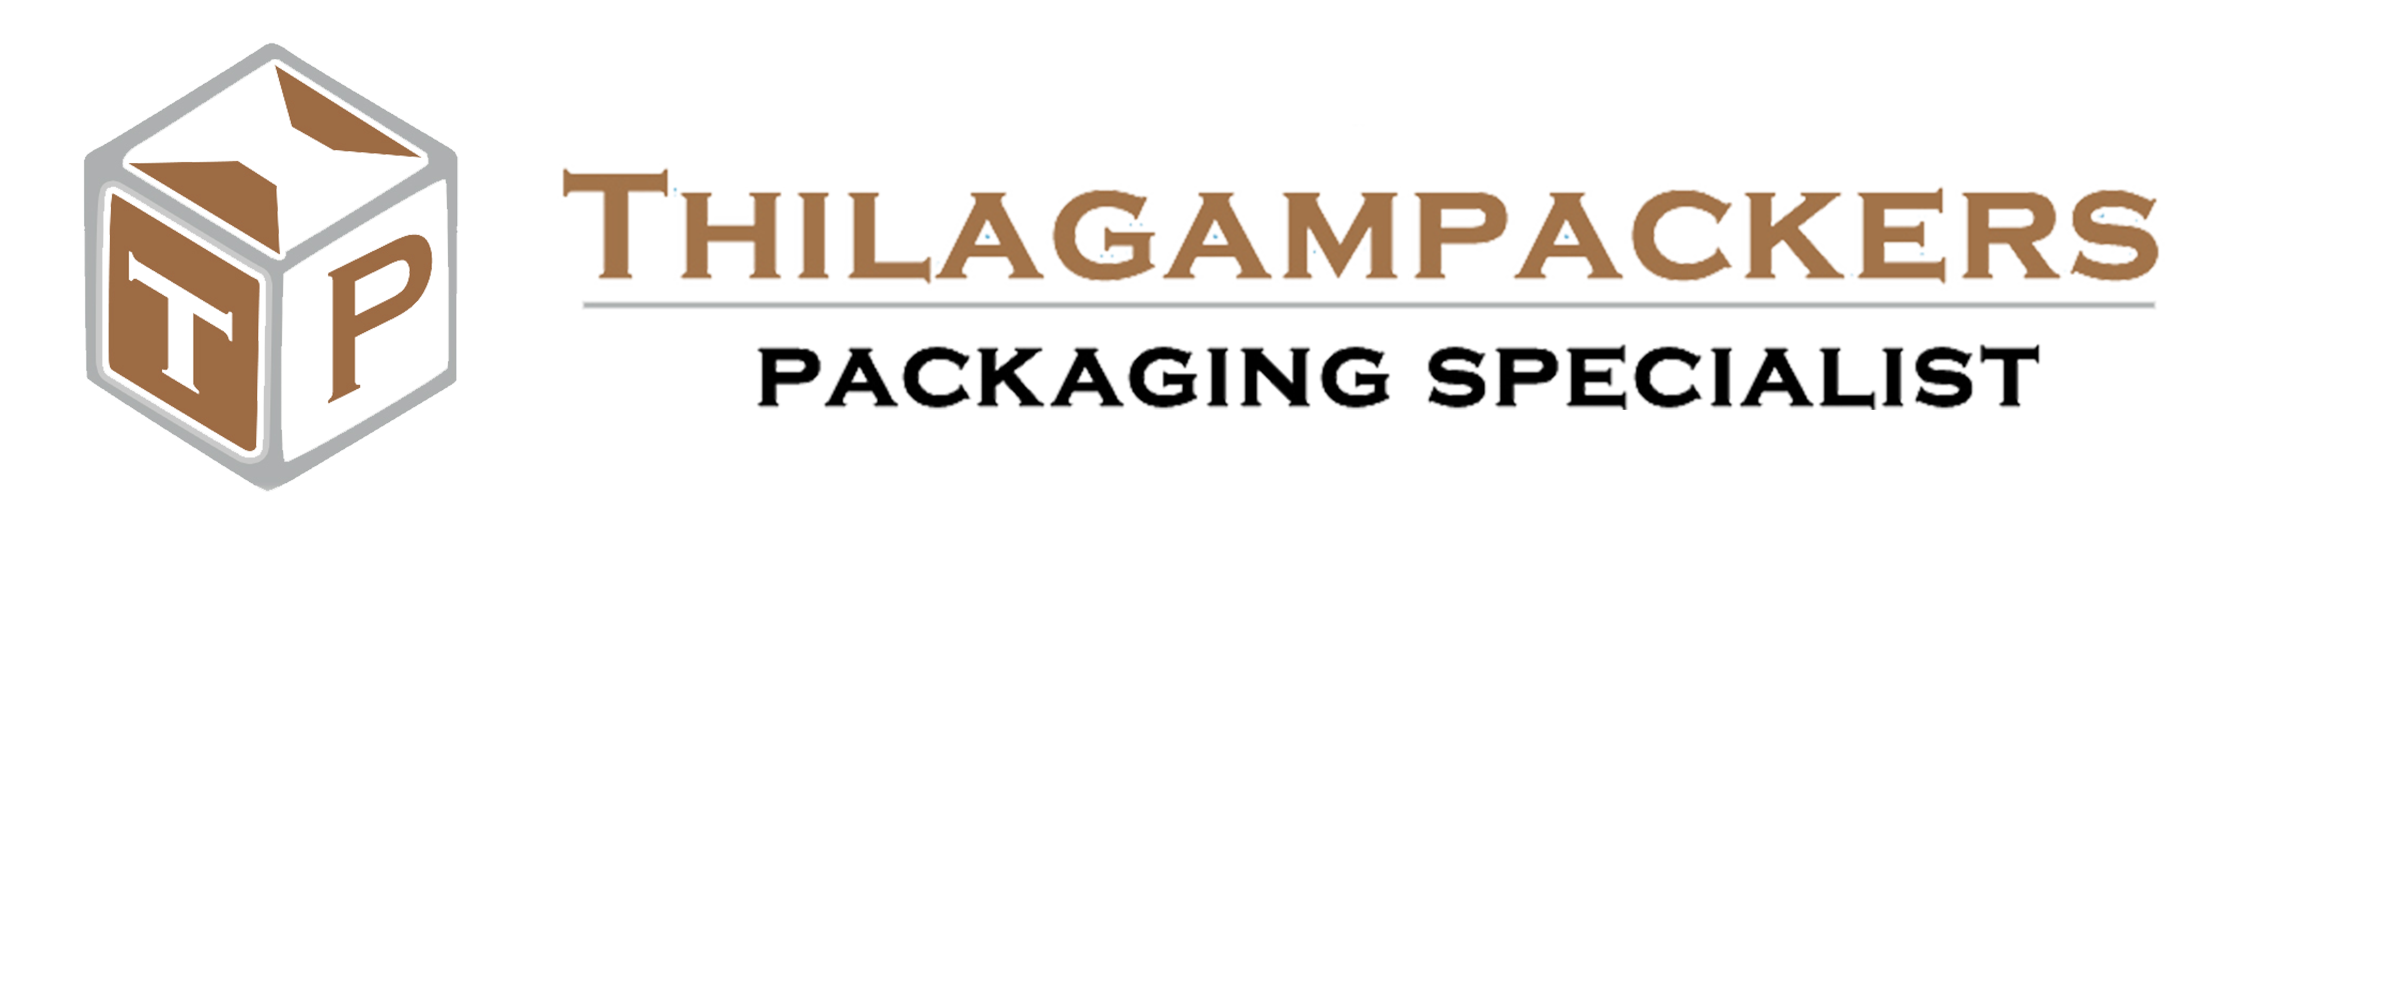 http://www.thilagampackers.co/Thilagam Packers